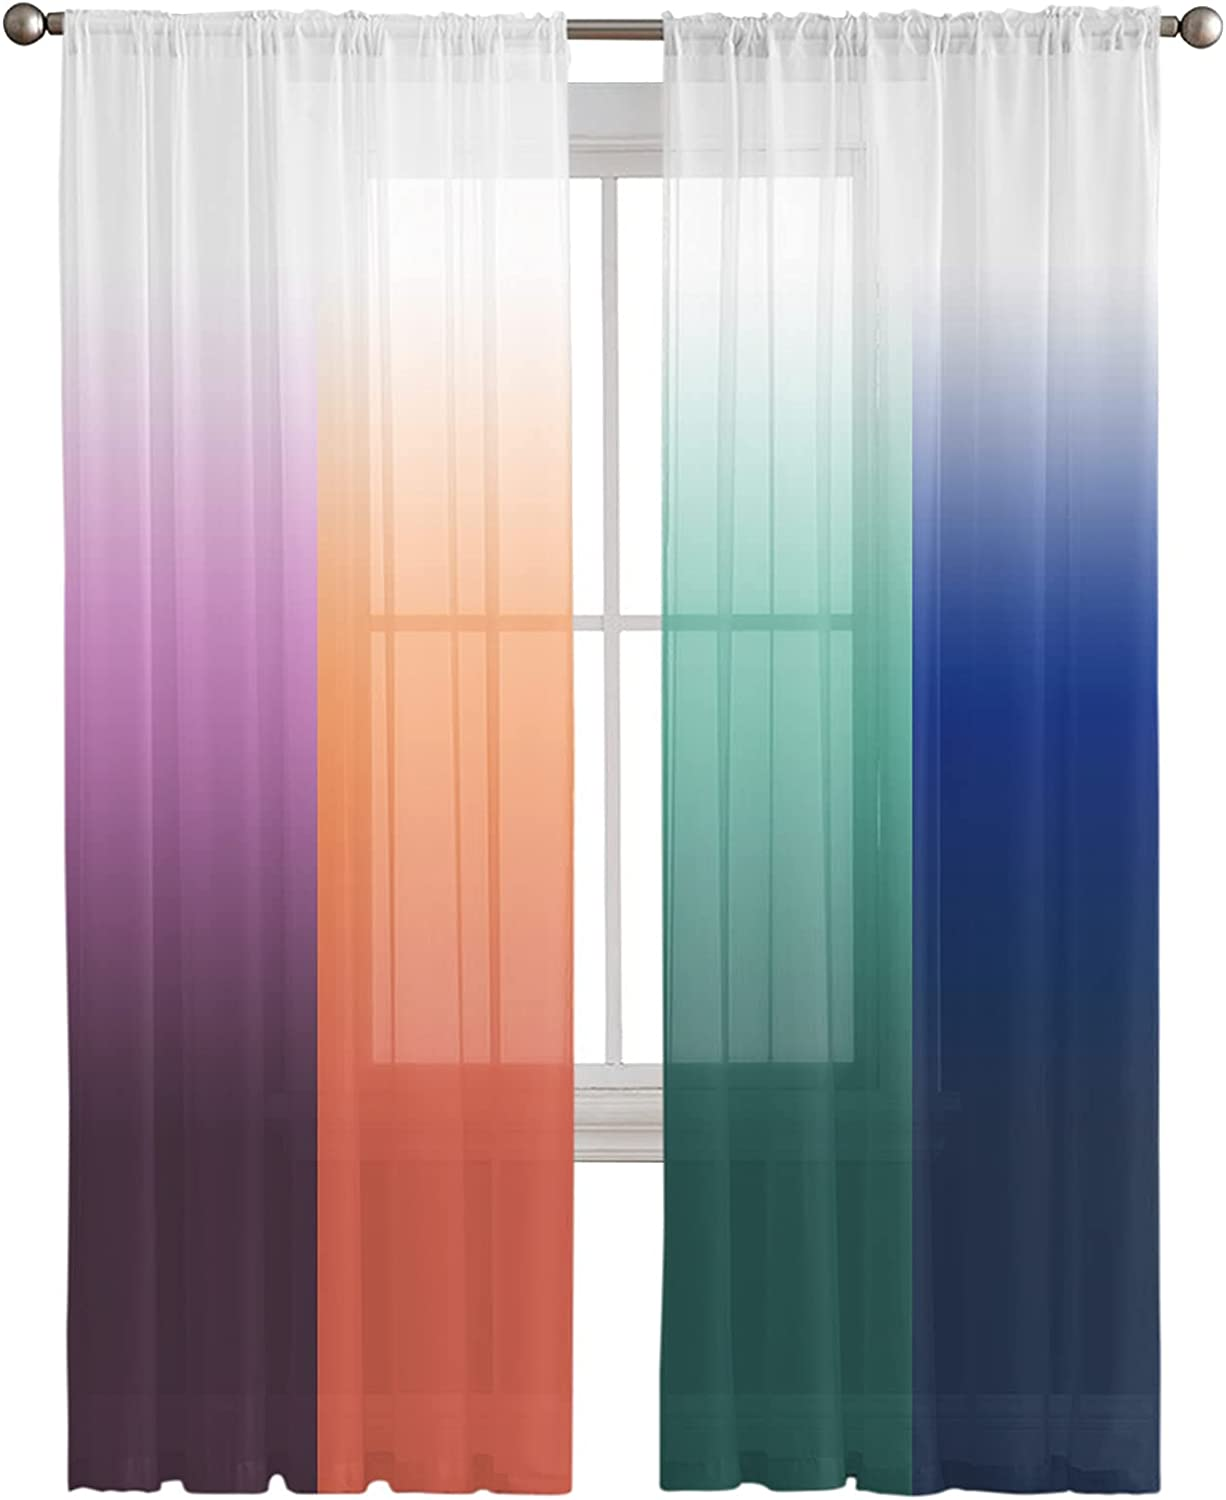 Semi Sheer Curtains Half Transparent Popular standard Privacy C service Gradient Abstract